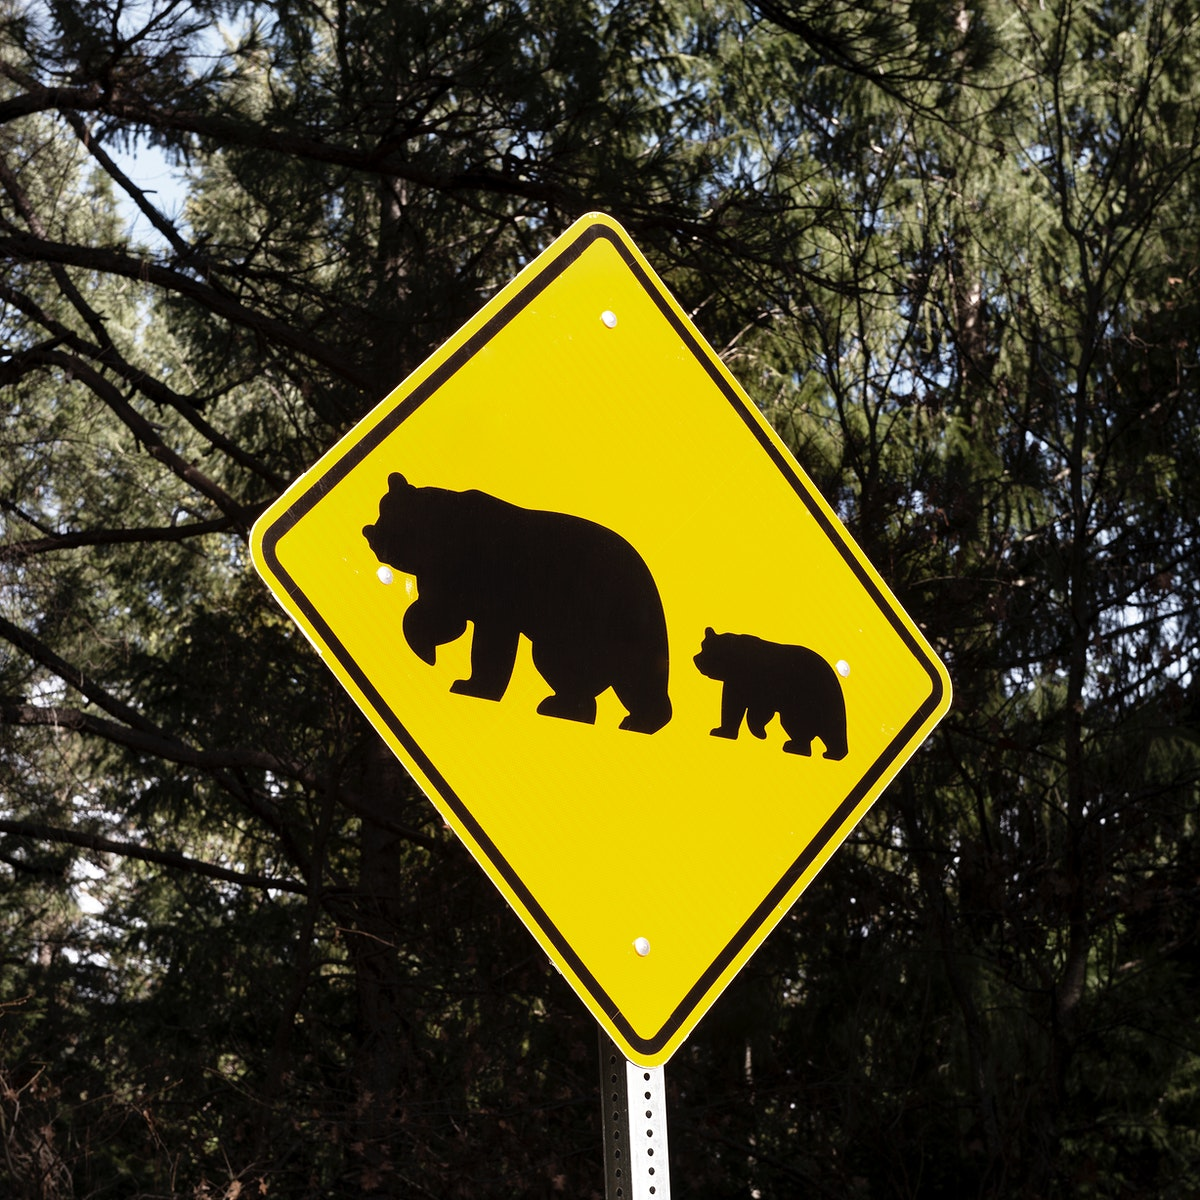 One of what are fairly common bear-crossing signs in California's Sierra Mountains. Original image from Carol M.…